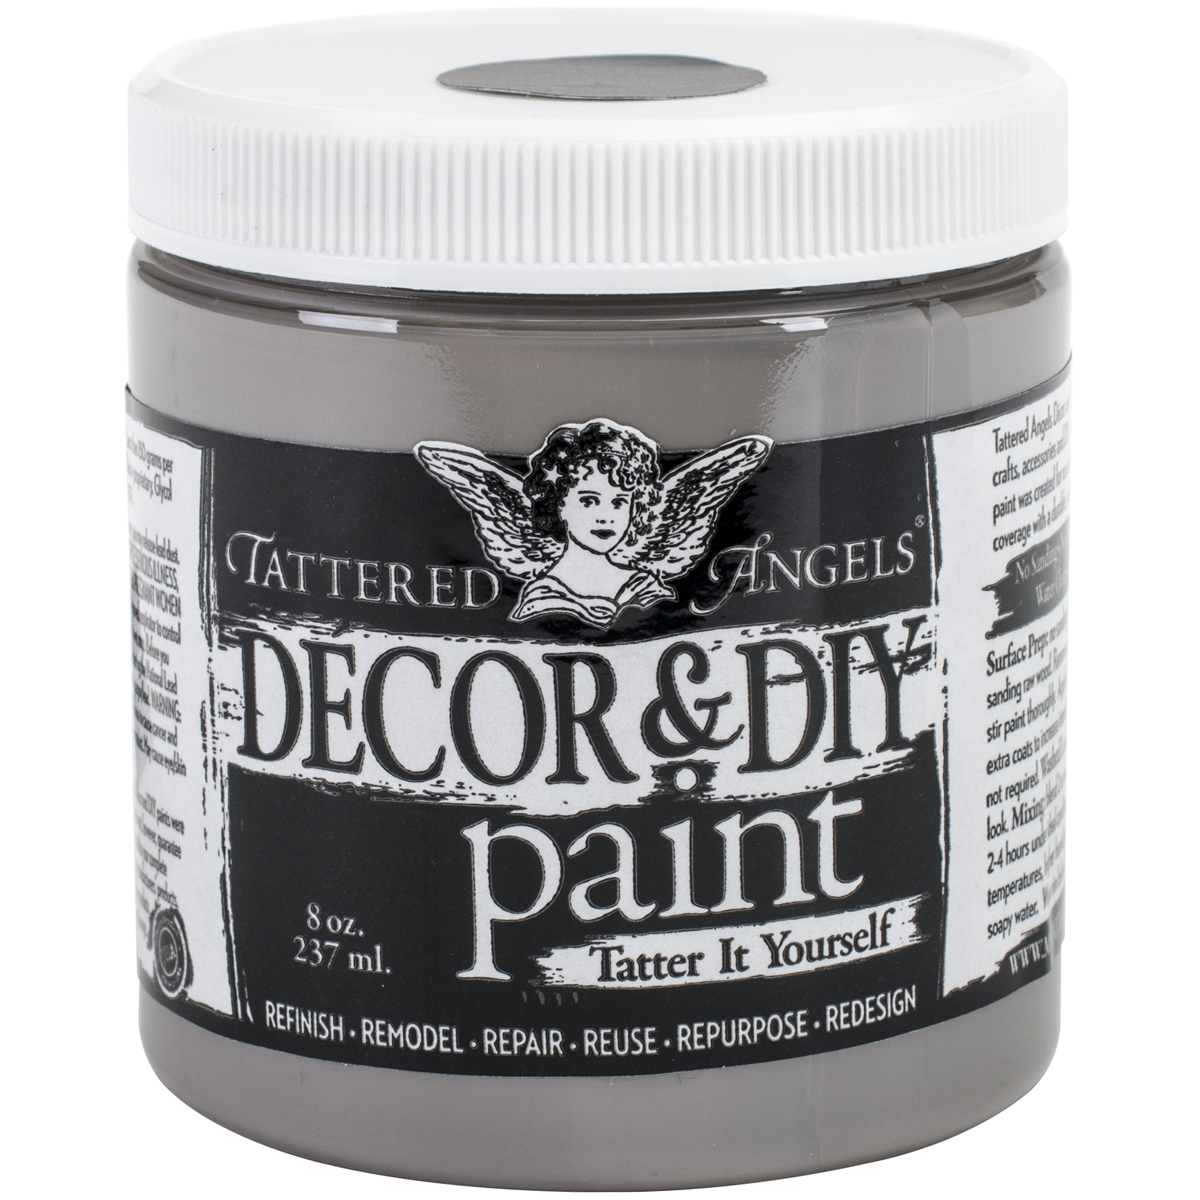 Decor & DIY Paint Cup 8oz-Silver